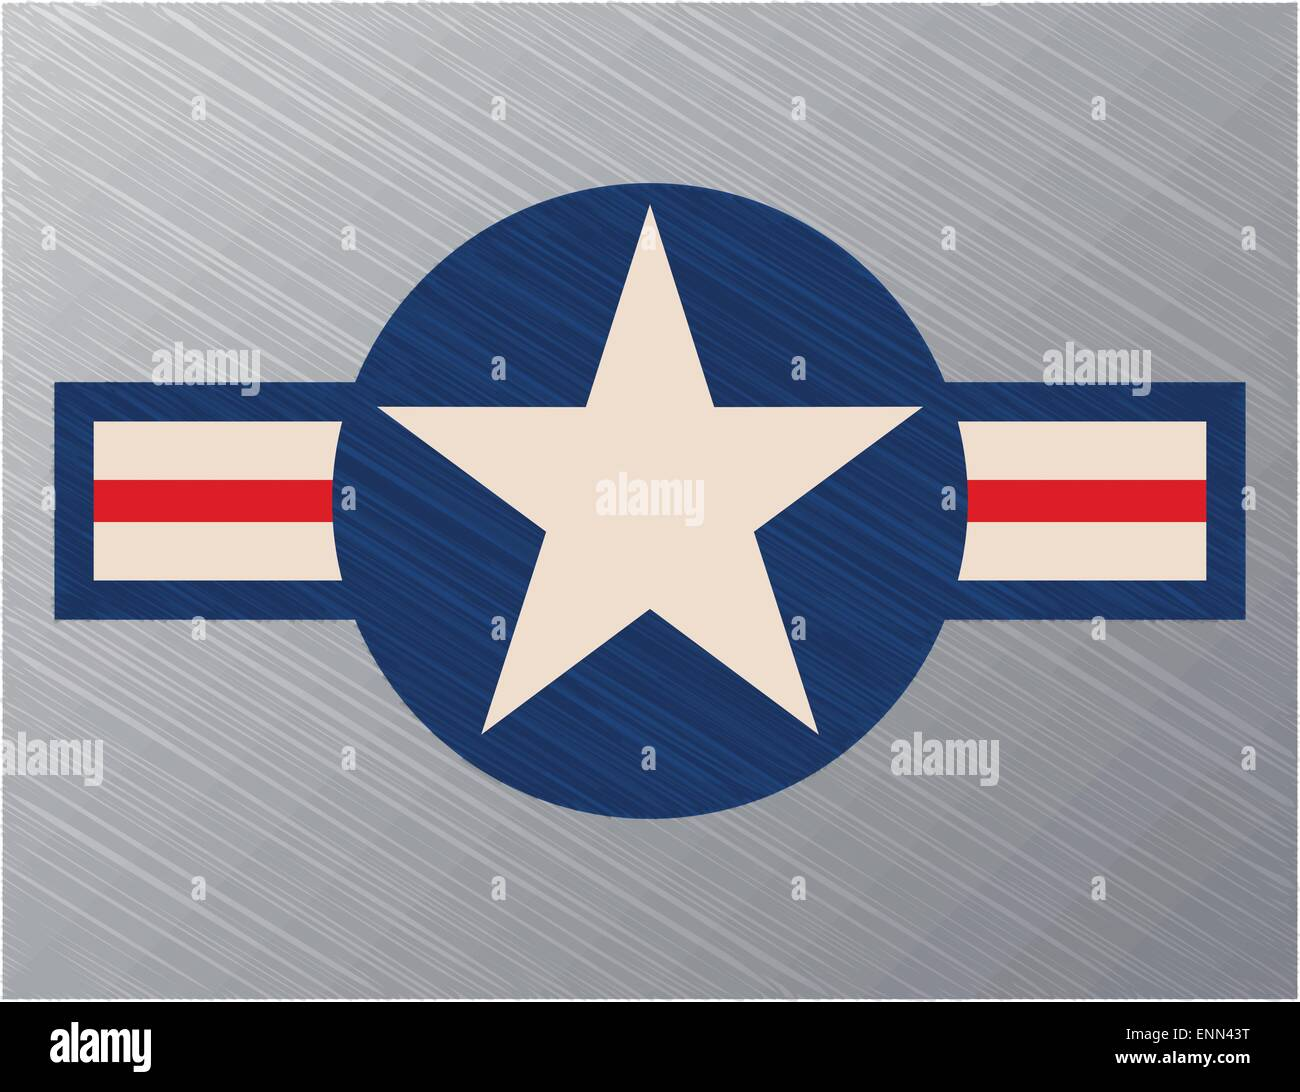 Us air force sign - Stock Image